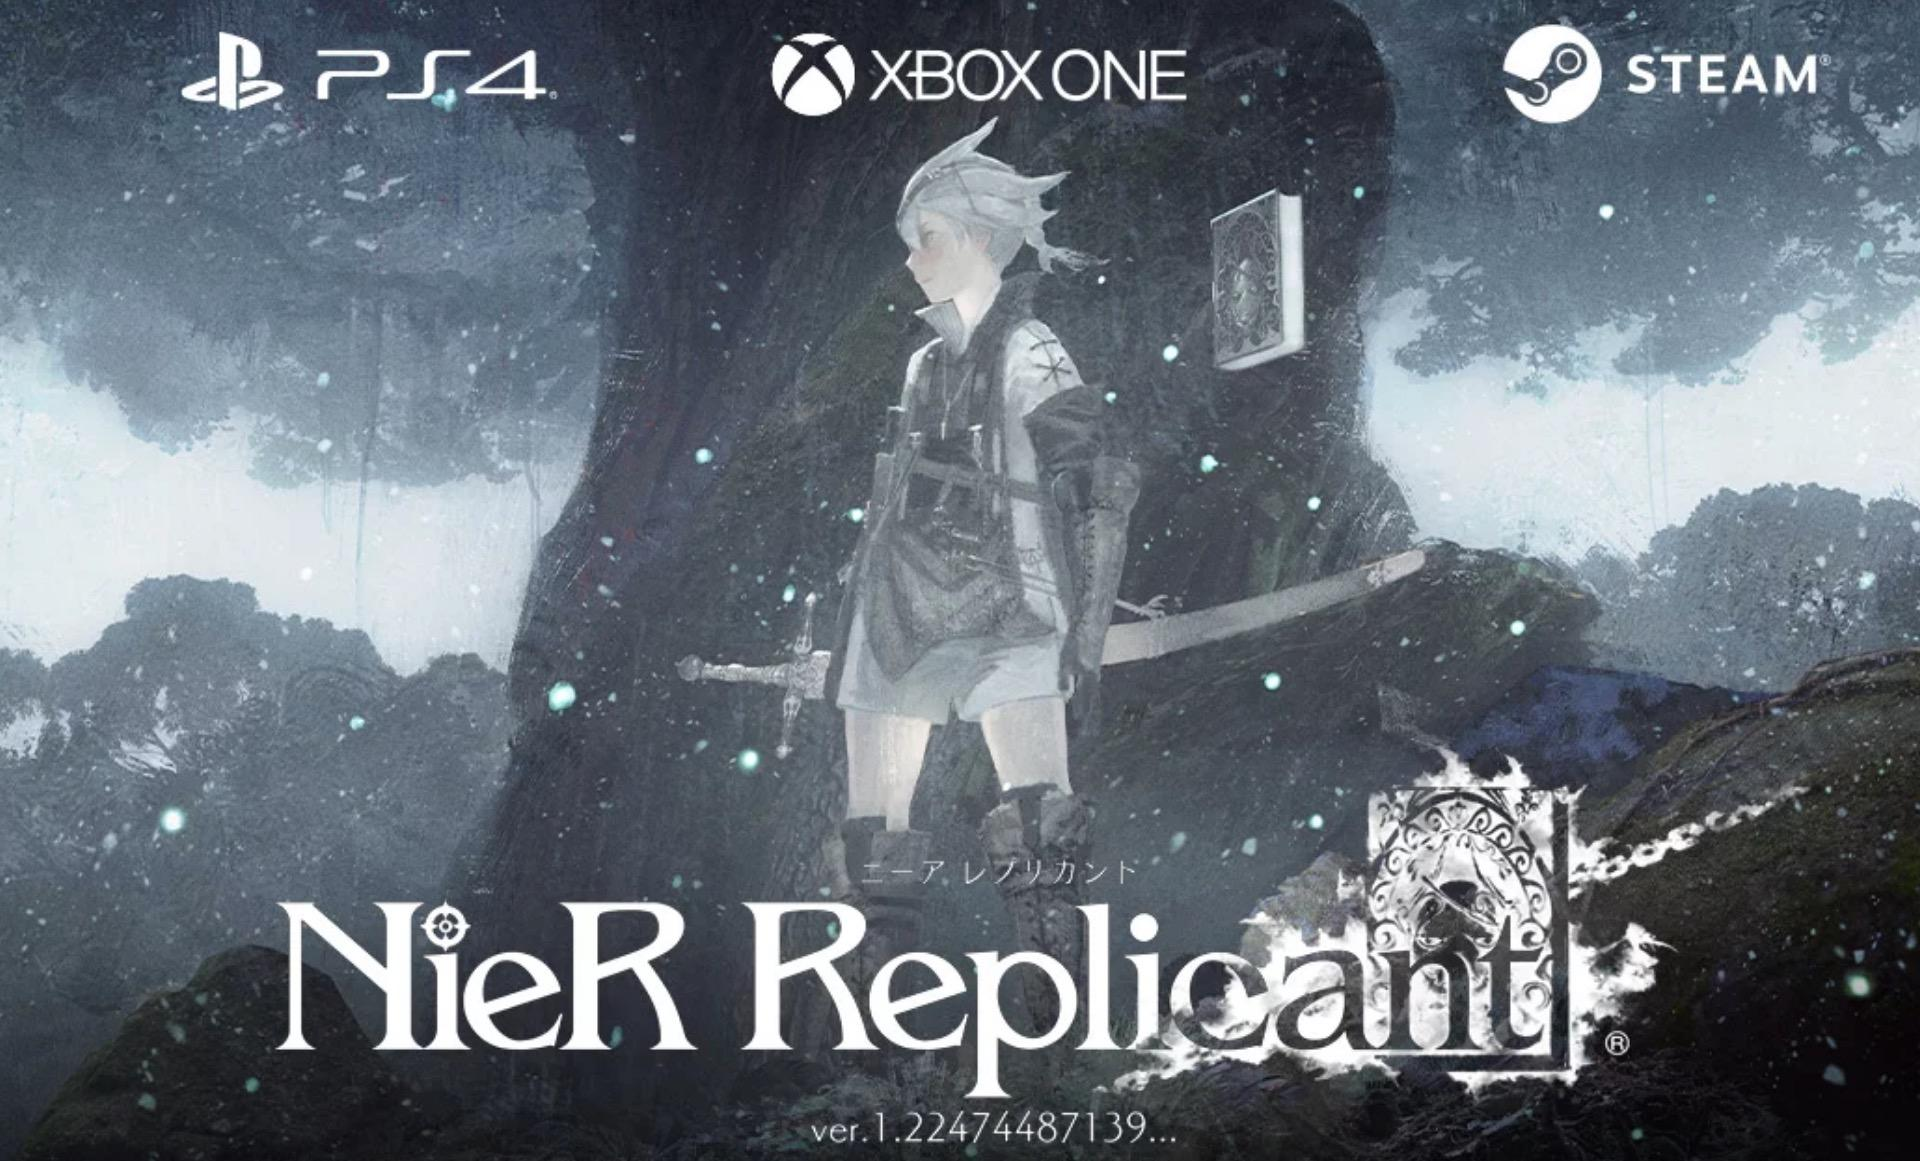 Nier Reincarnation is a new Nier game for iOS and Android